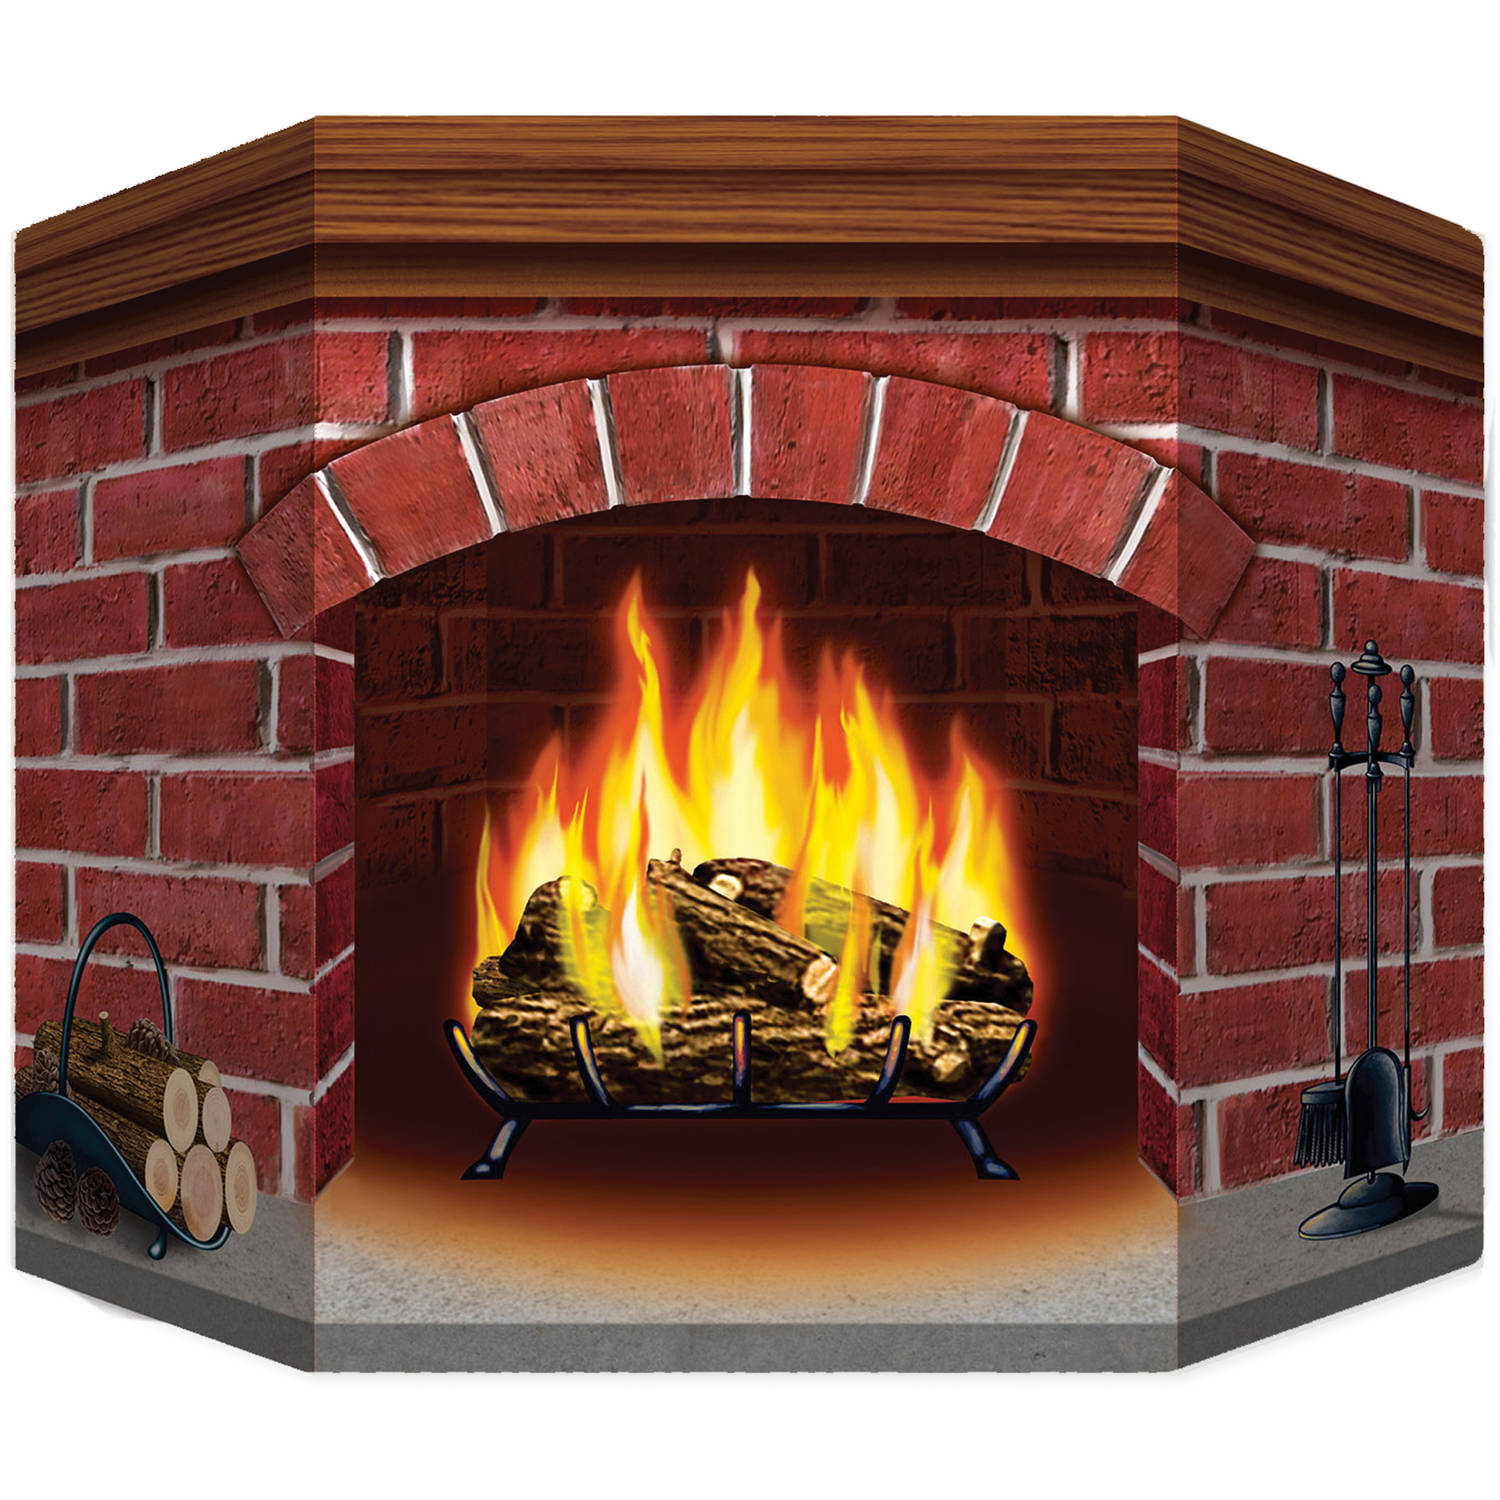 Fireplace Halloween Decorations: Brick Fireplace Standup Halloween Decoration Props Holiday